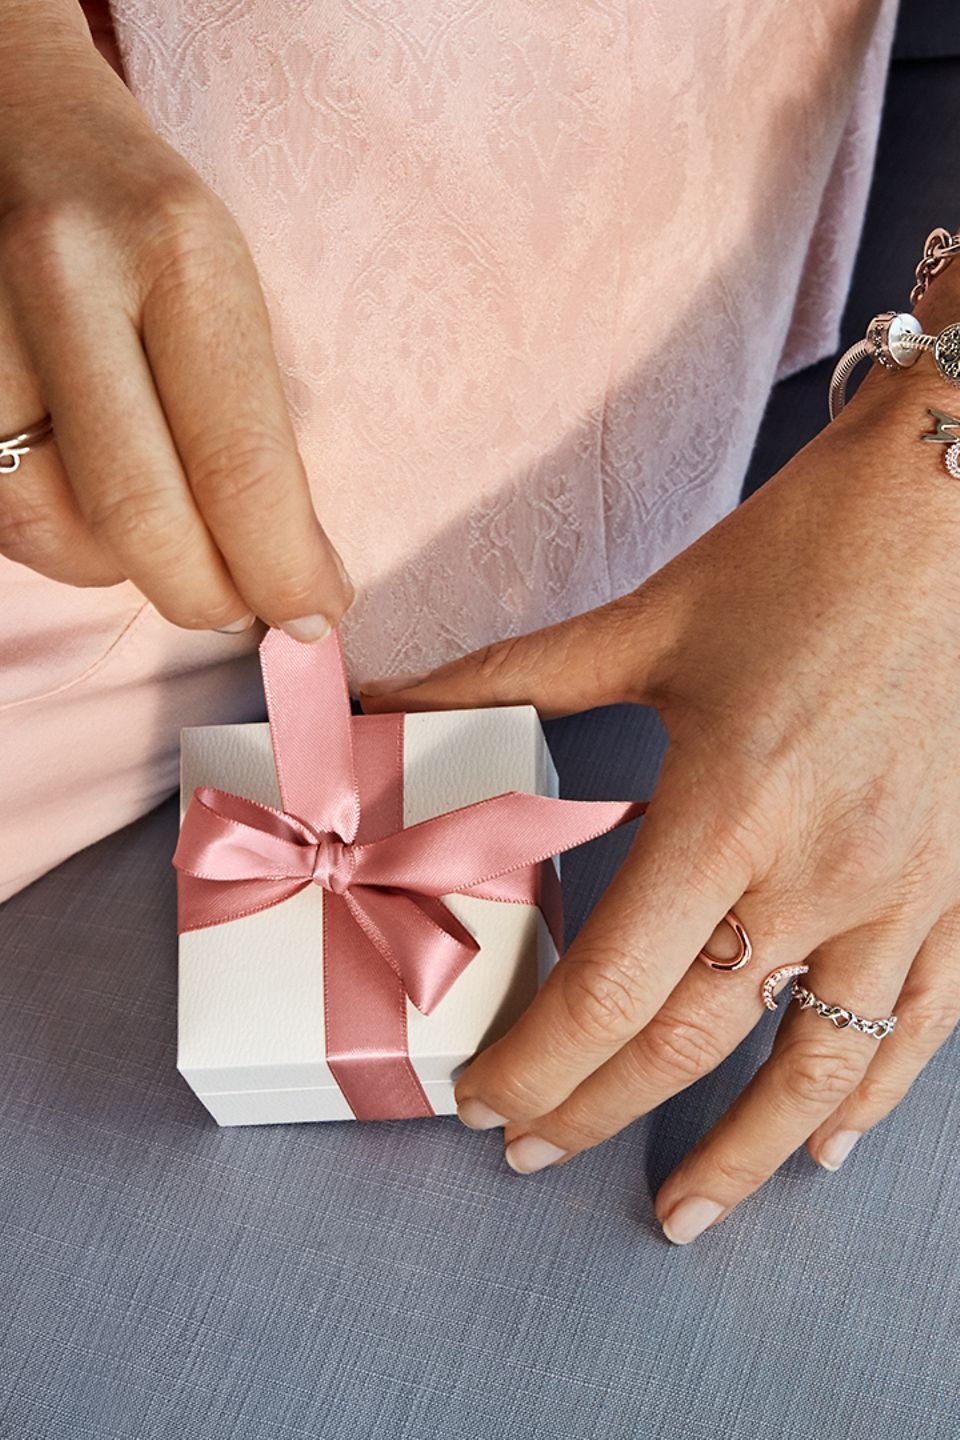 HIGH_RGB_Q2_2020_May_SoMe_Model_Closeup_MothersDay_Gifting_01_Square_new